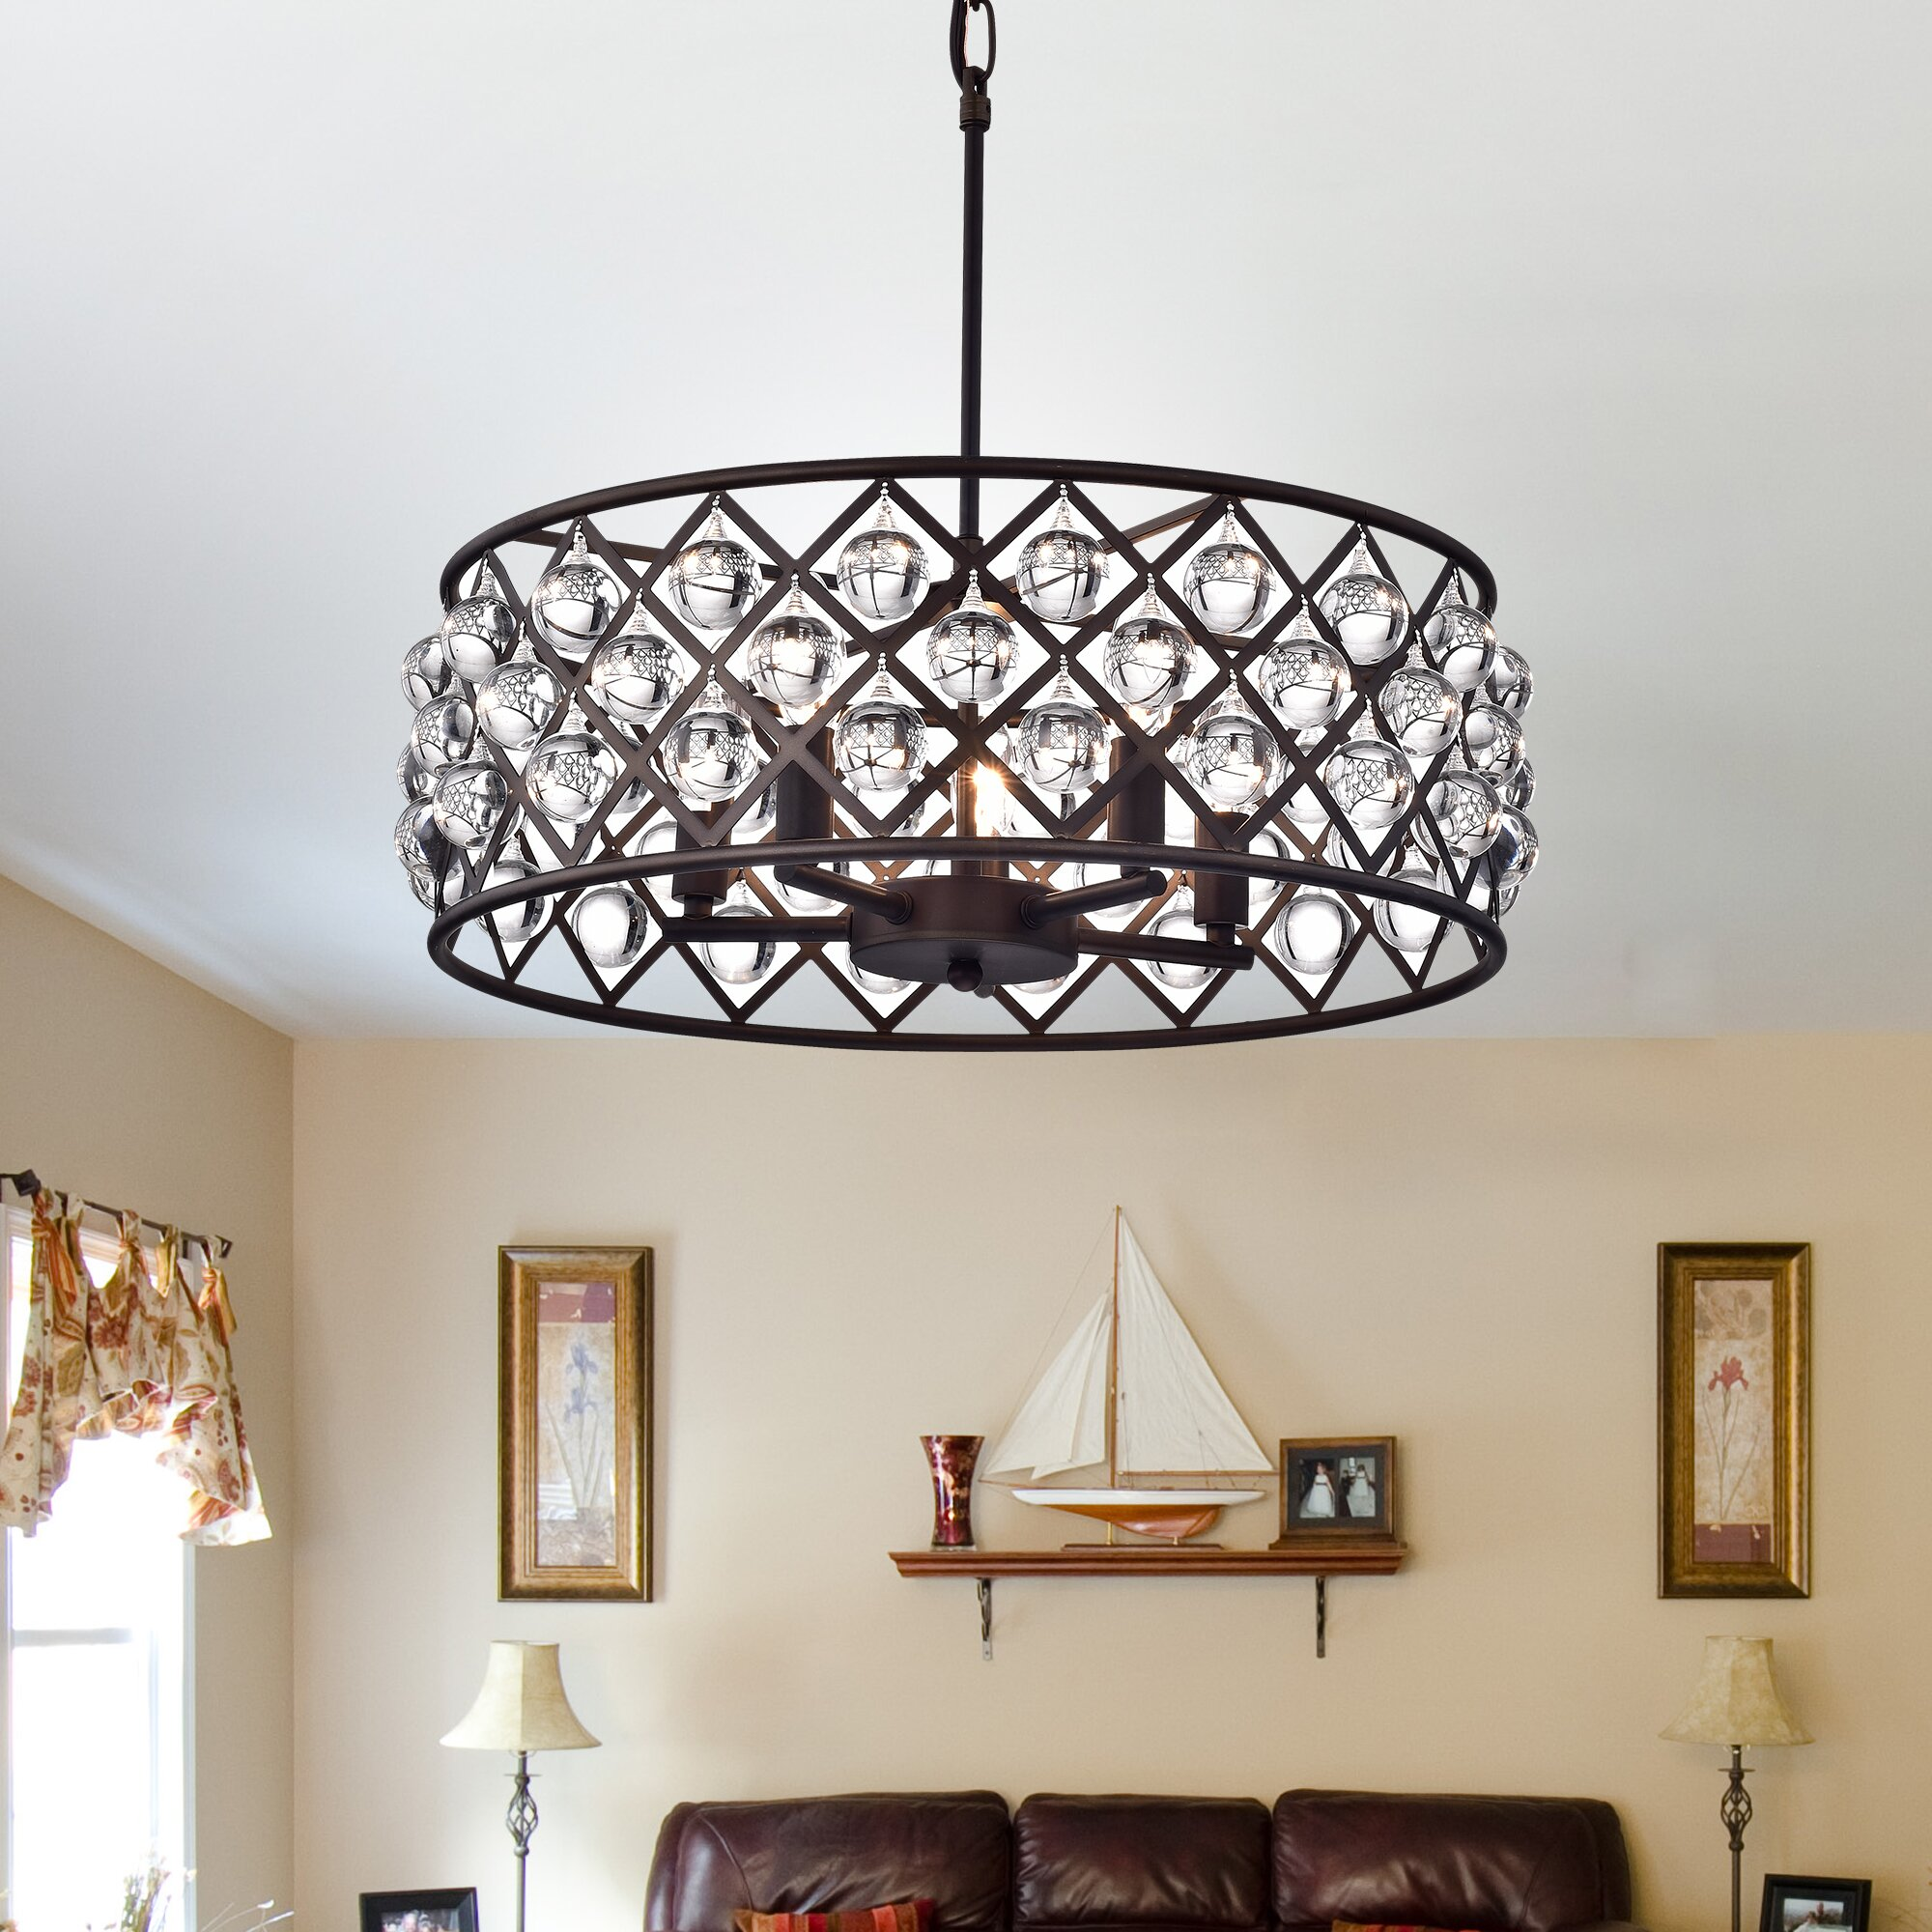 lighting ceiling lights drum chandeliers warehouse of tiffany sku. Black Bedroom Furniture Sets. Home Design Ideas